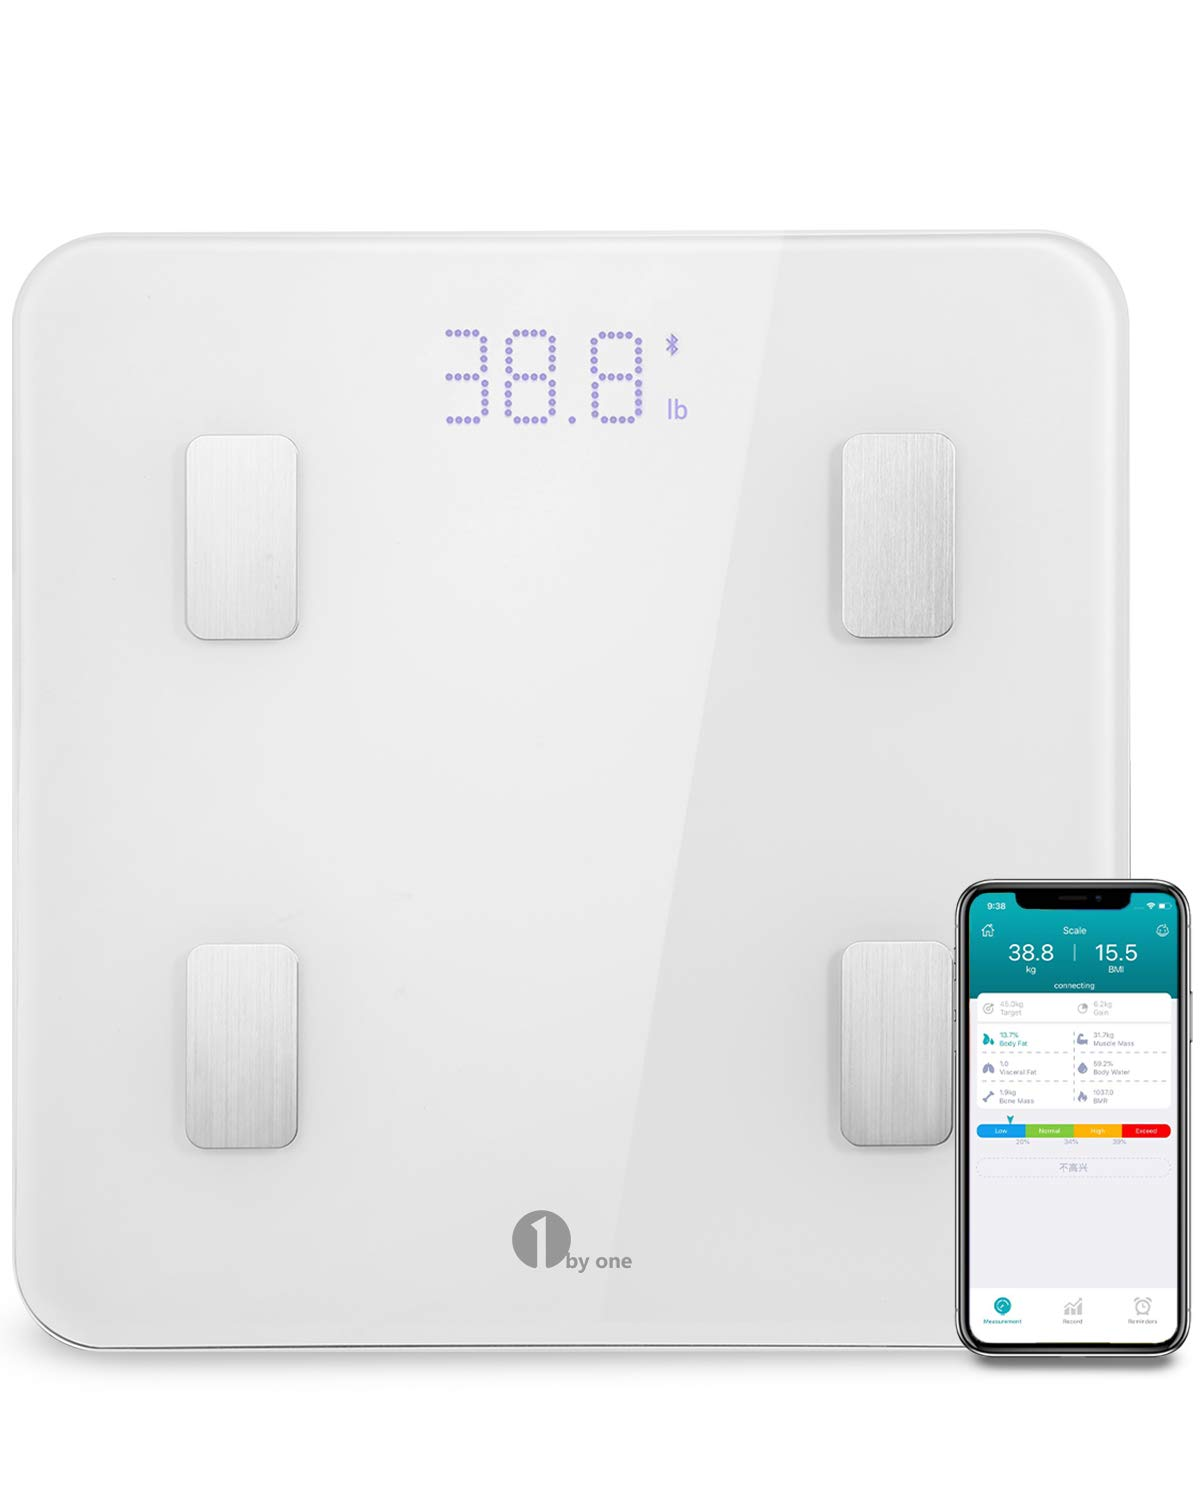 1byone Bluetooth Body Fat Scale with IOS and Android App Smart Wireless Digital Bathroom Scale for Body weight, Body Fat, Water, Muscle Mass, BMI, BMR, Bone Mass and Visceral Fat, White 4332442543